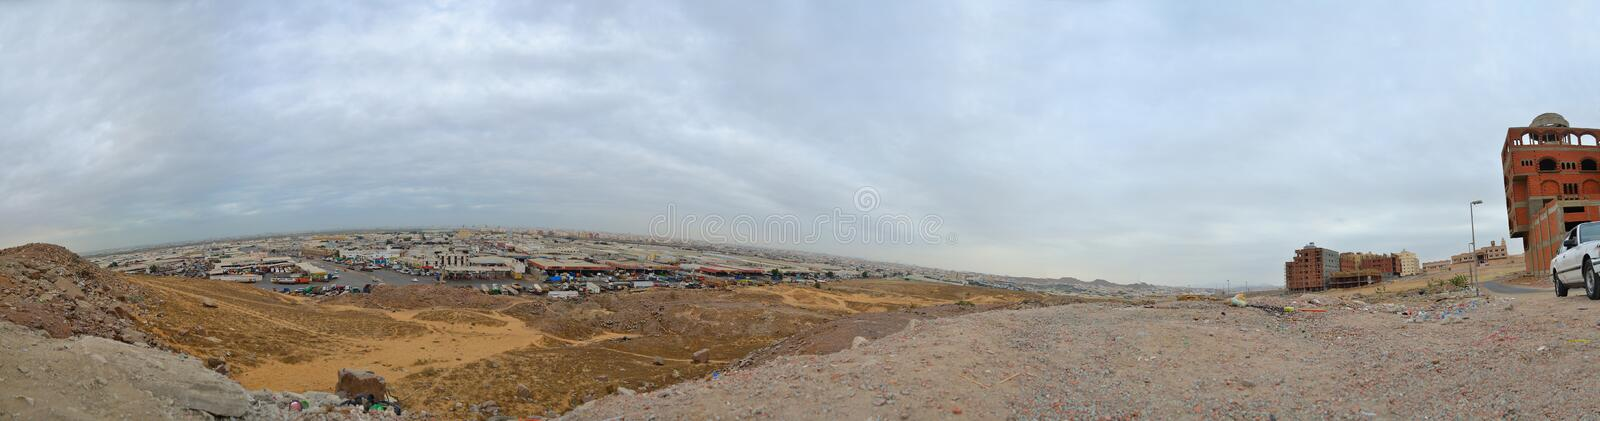 Morning on a mountain city of Jeddah stock image